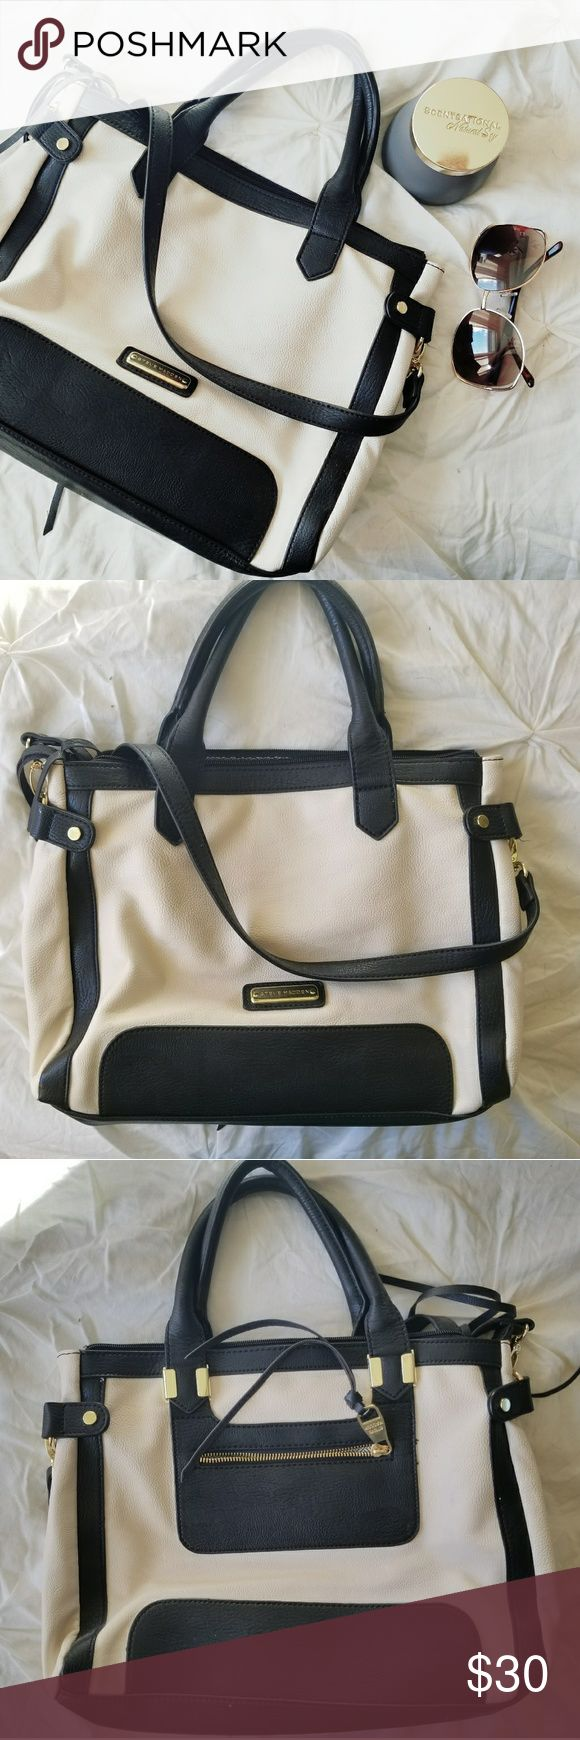 short and sweet resignation letter%0A   day closet clear out  Steve Madden bag